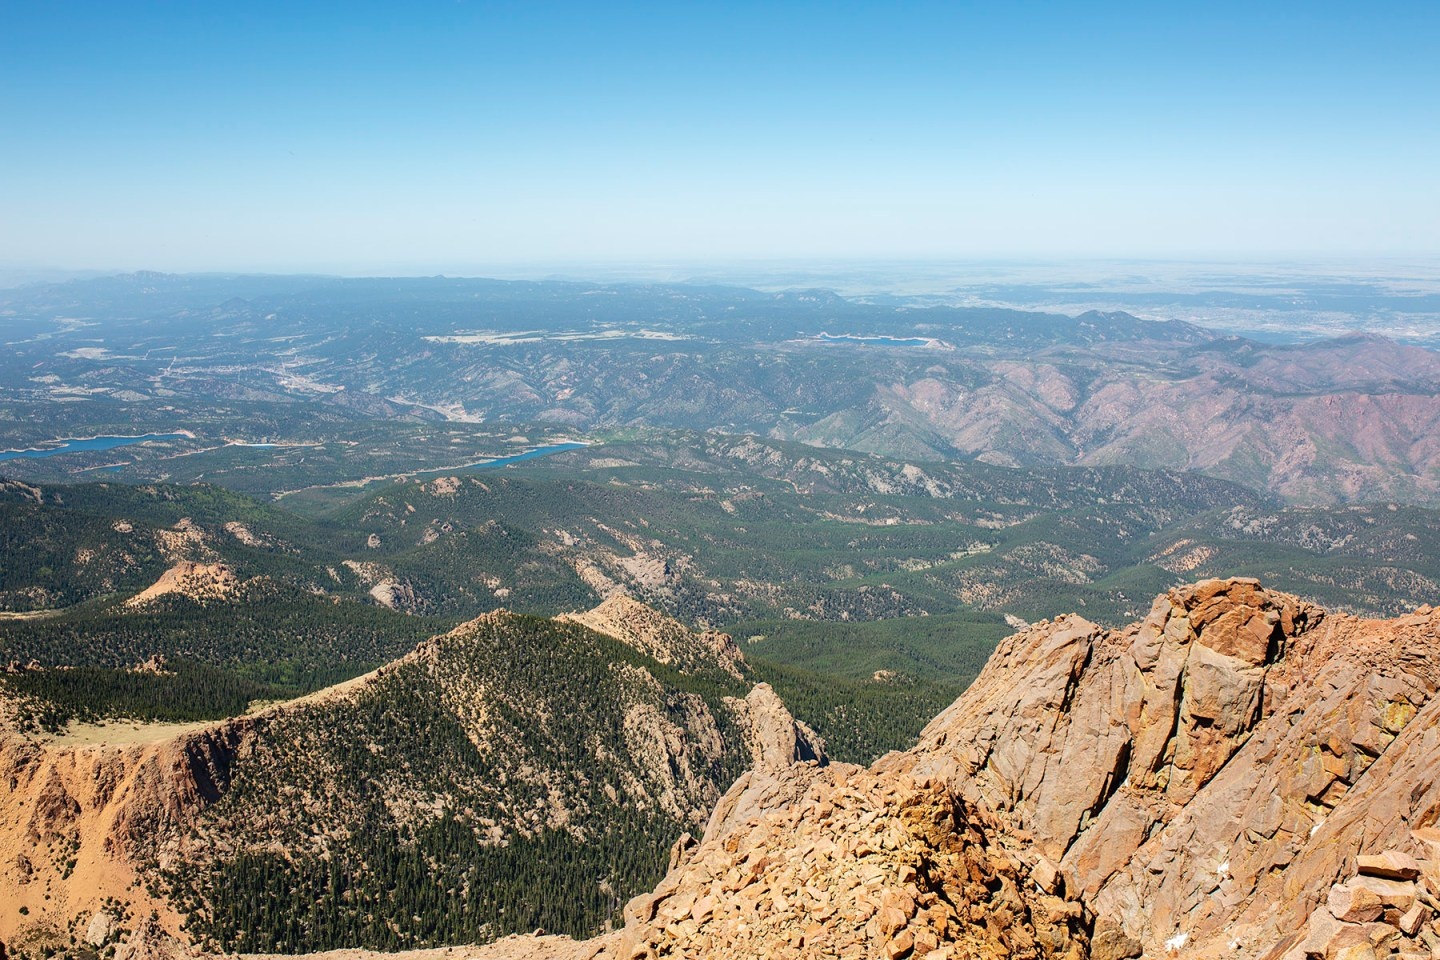 The view from the top of America's Mountain